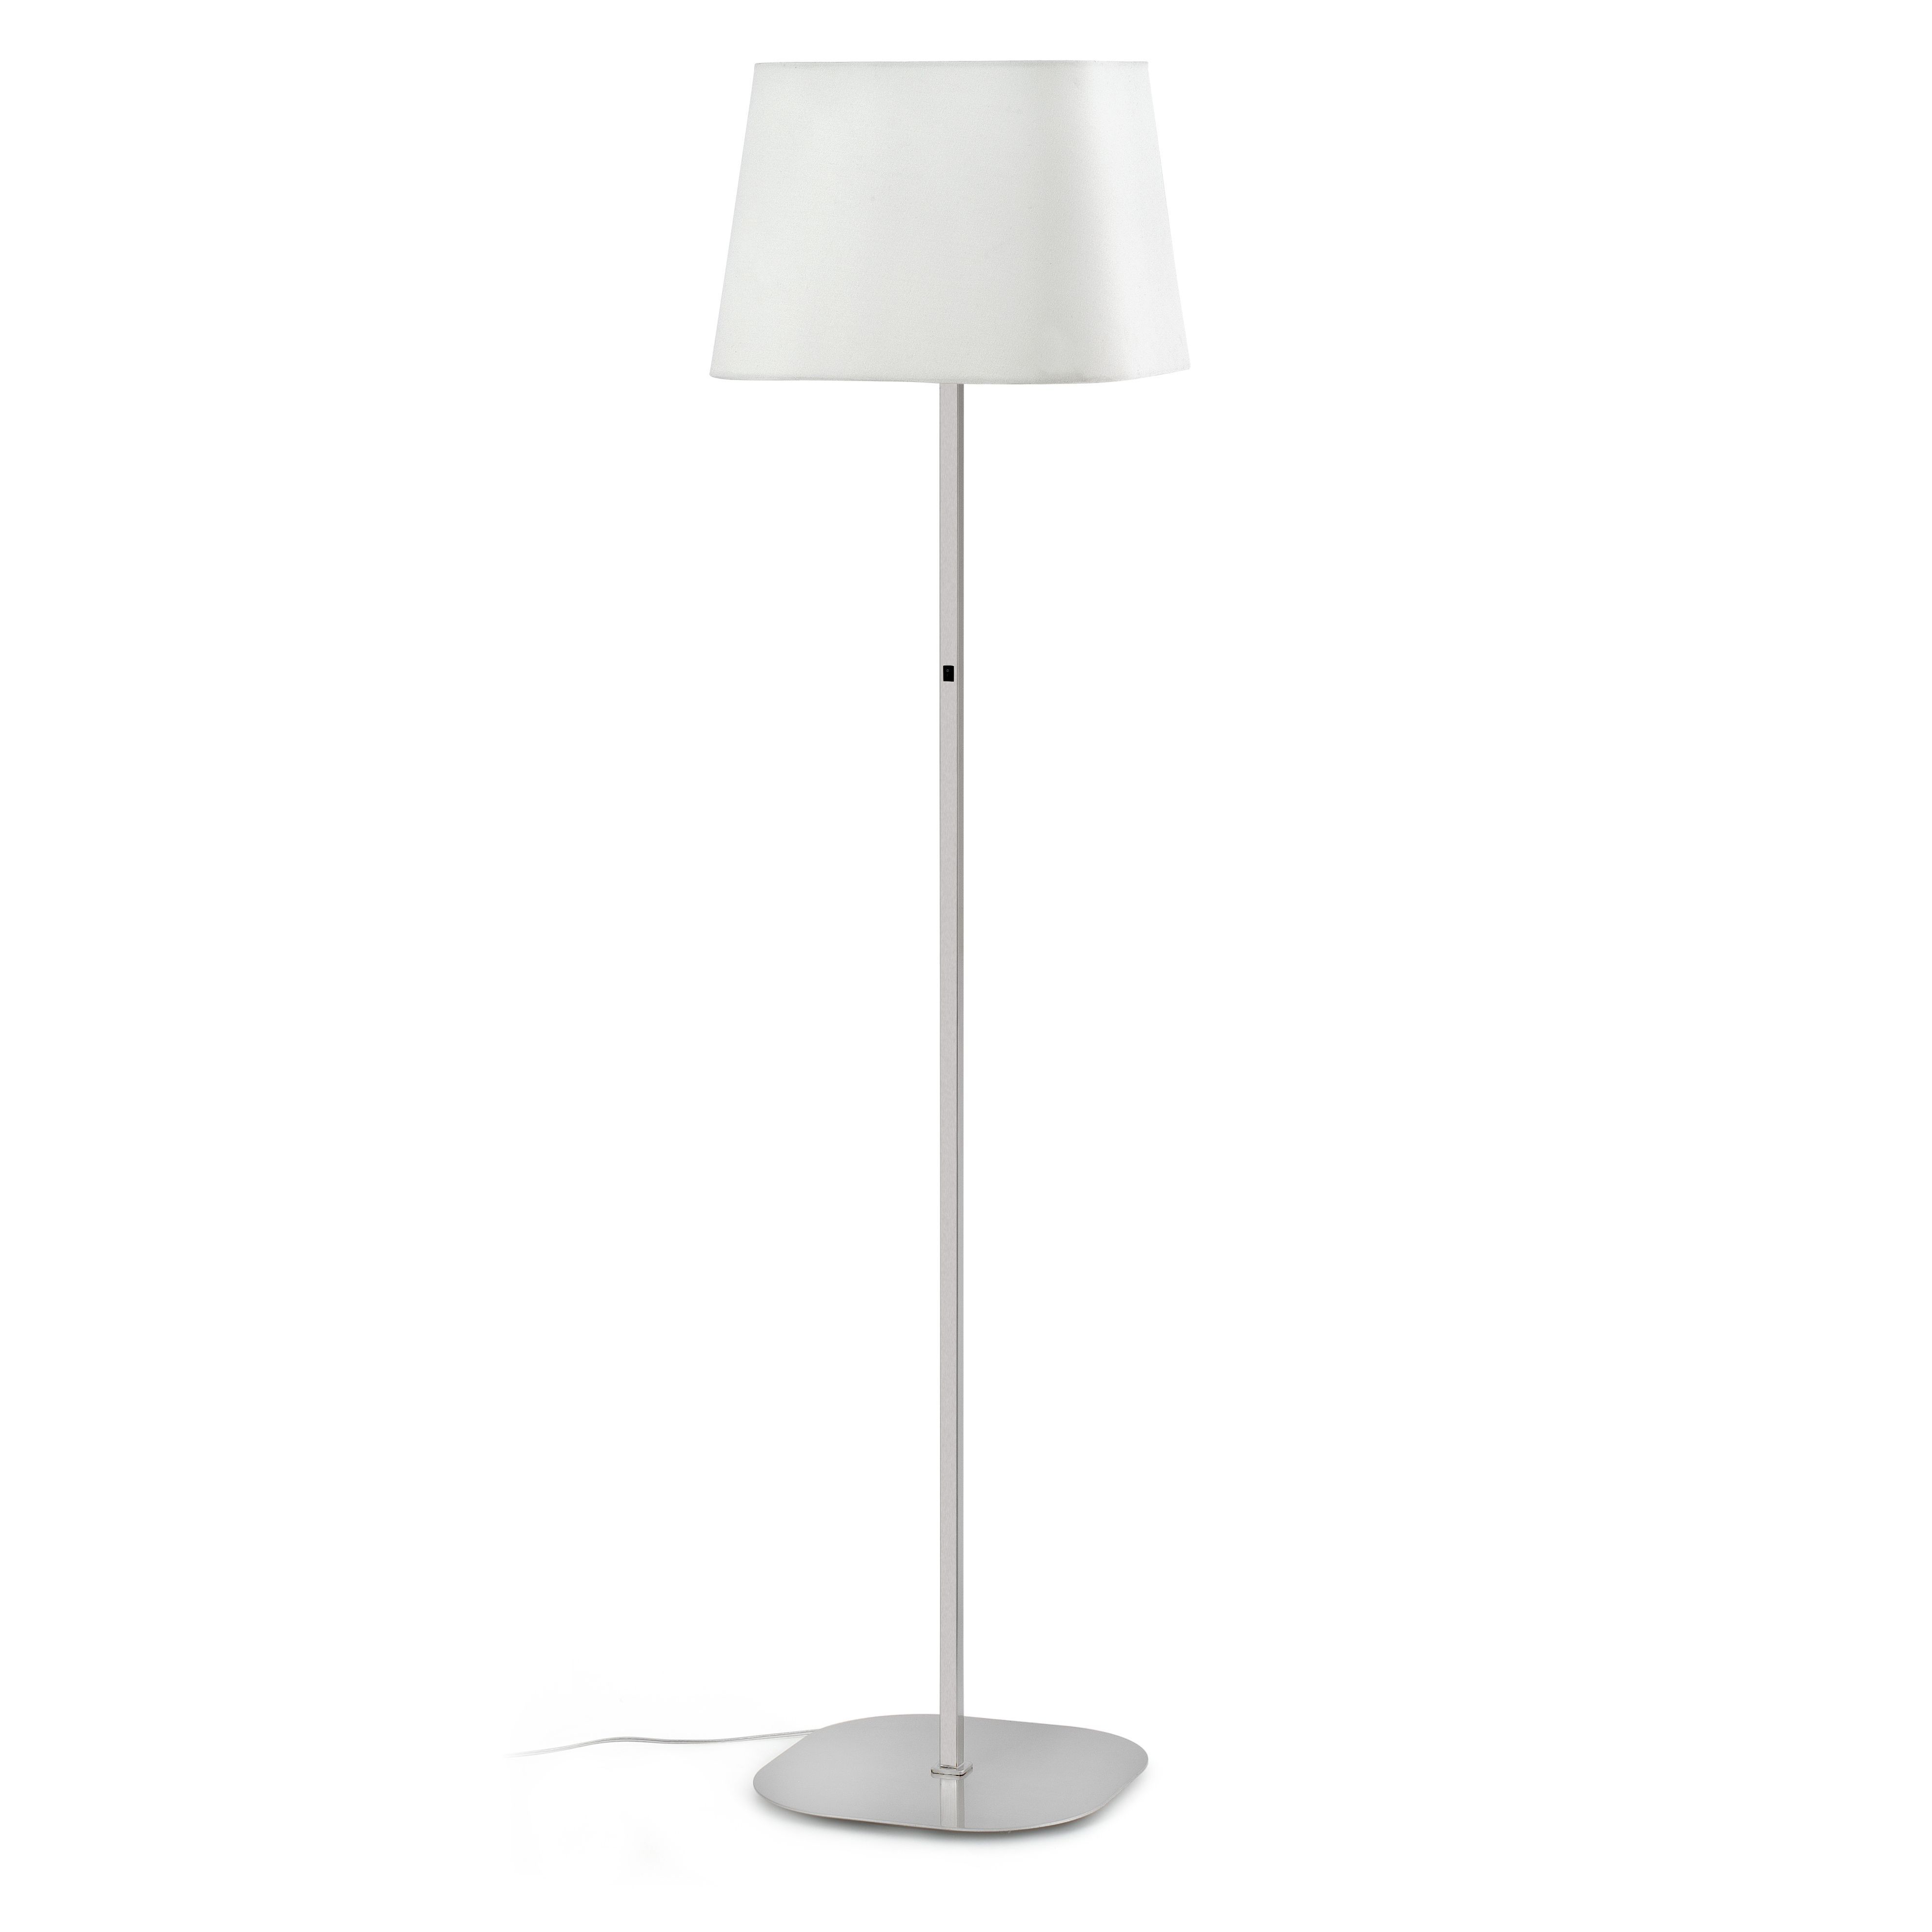 Sweet Floor Lamp E27 20w - Nickel Matt lampshade white